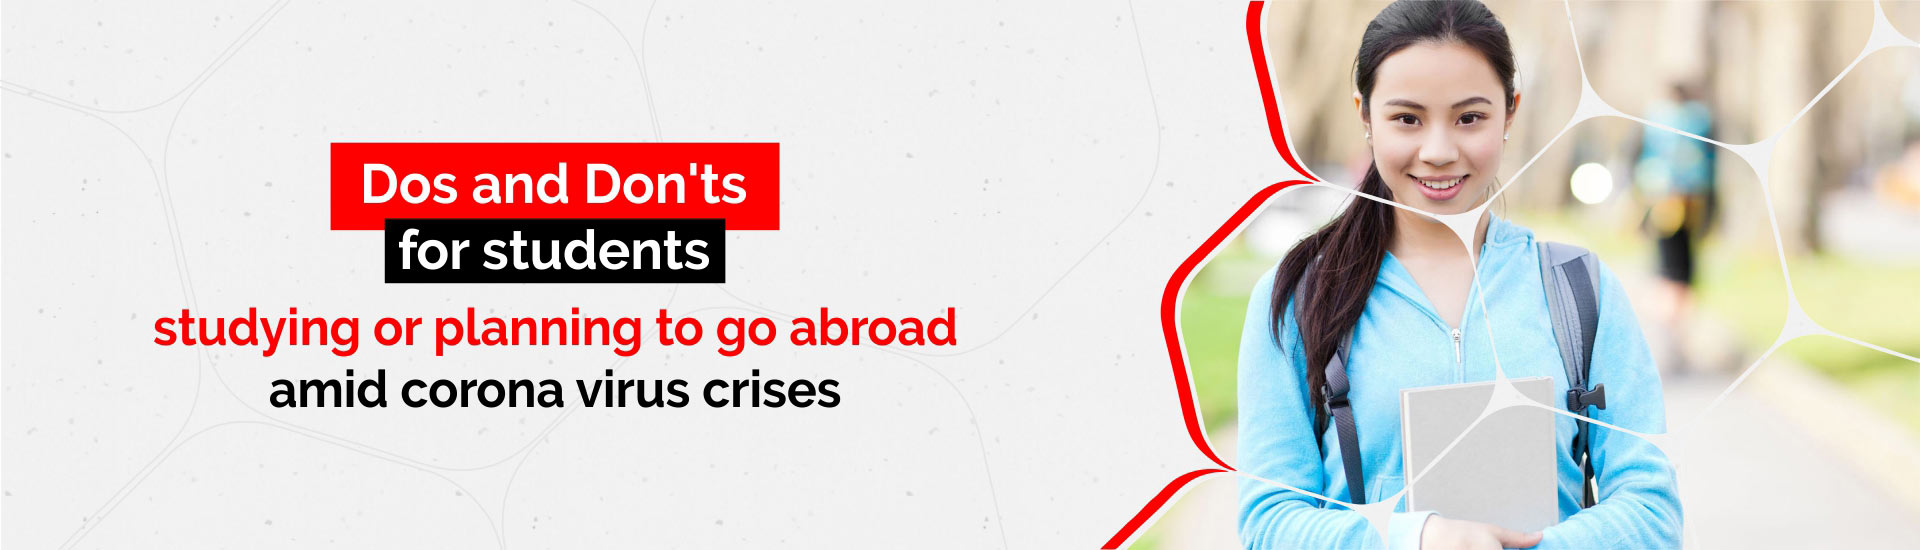 Dos and Don'ts for students studying or planning to go abroad amid coronavirus crises